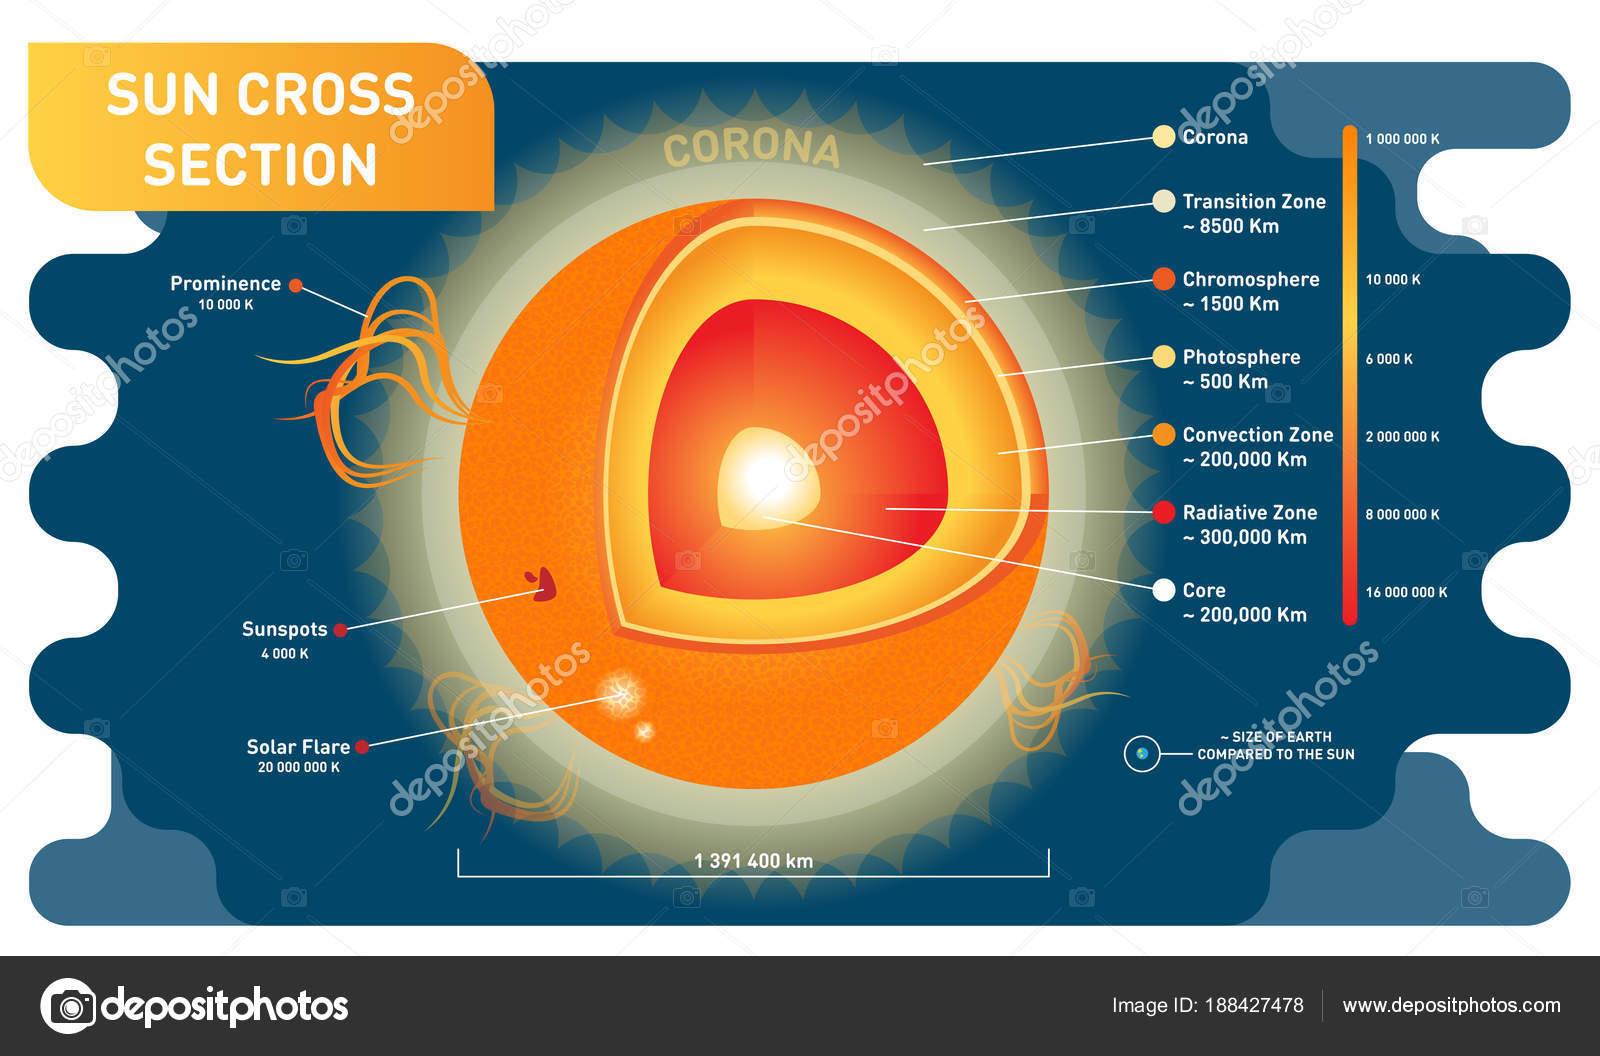 hight resolution of sun cross section scientific vector illustration diagram with sun inner layers sunspots solar flare and prominence educational information poster